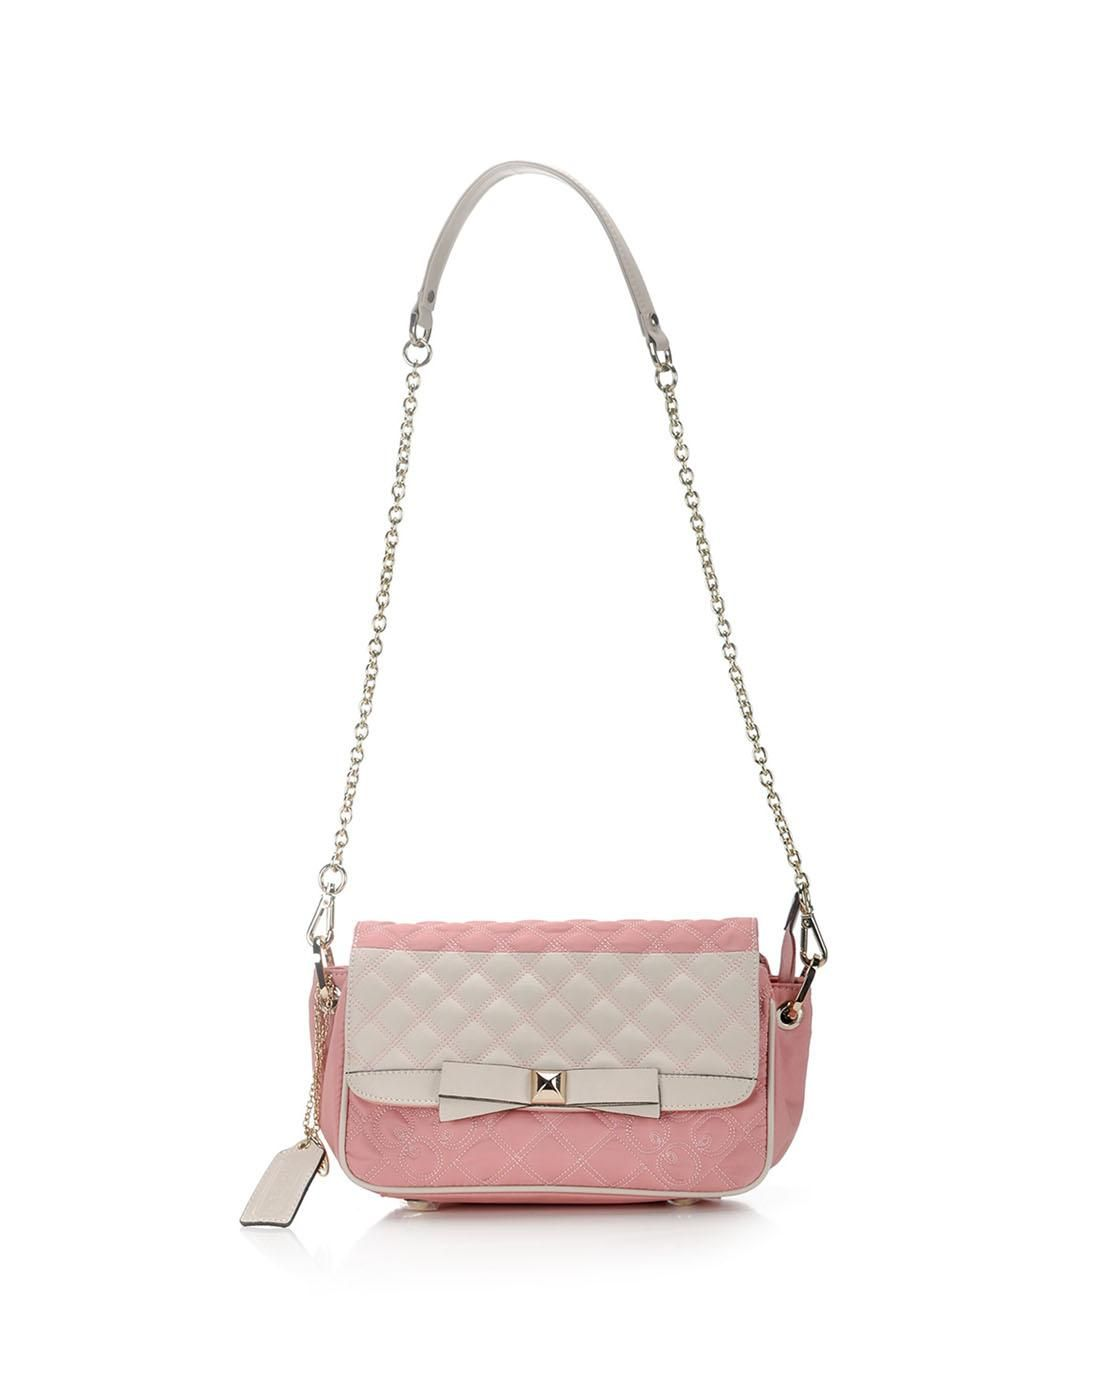 a61ada12f643  AdoreWe  VIPme Shoulder Bags - QIANBH Fashion Pink and Nude Mini Shoulder  Bag -